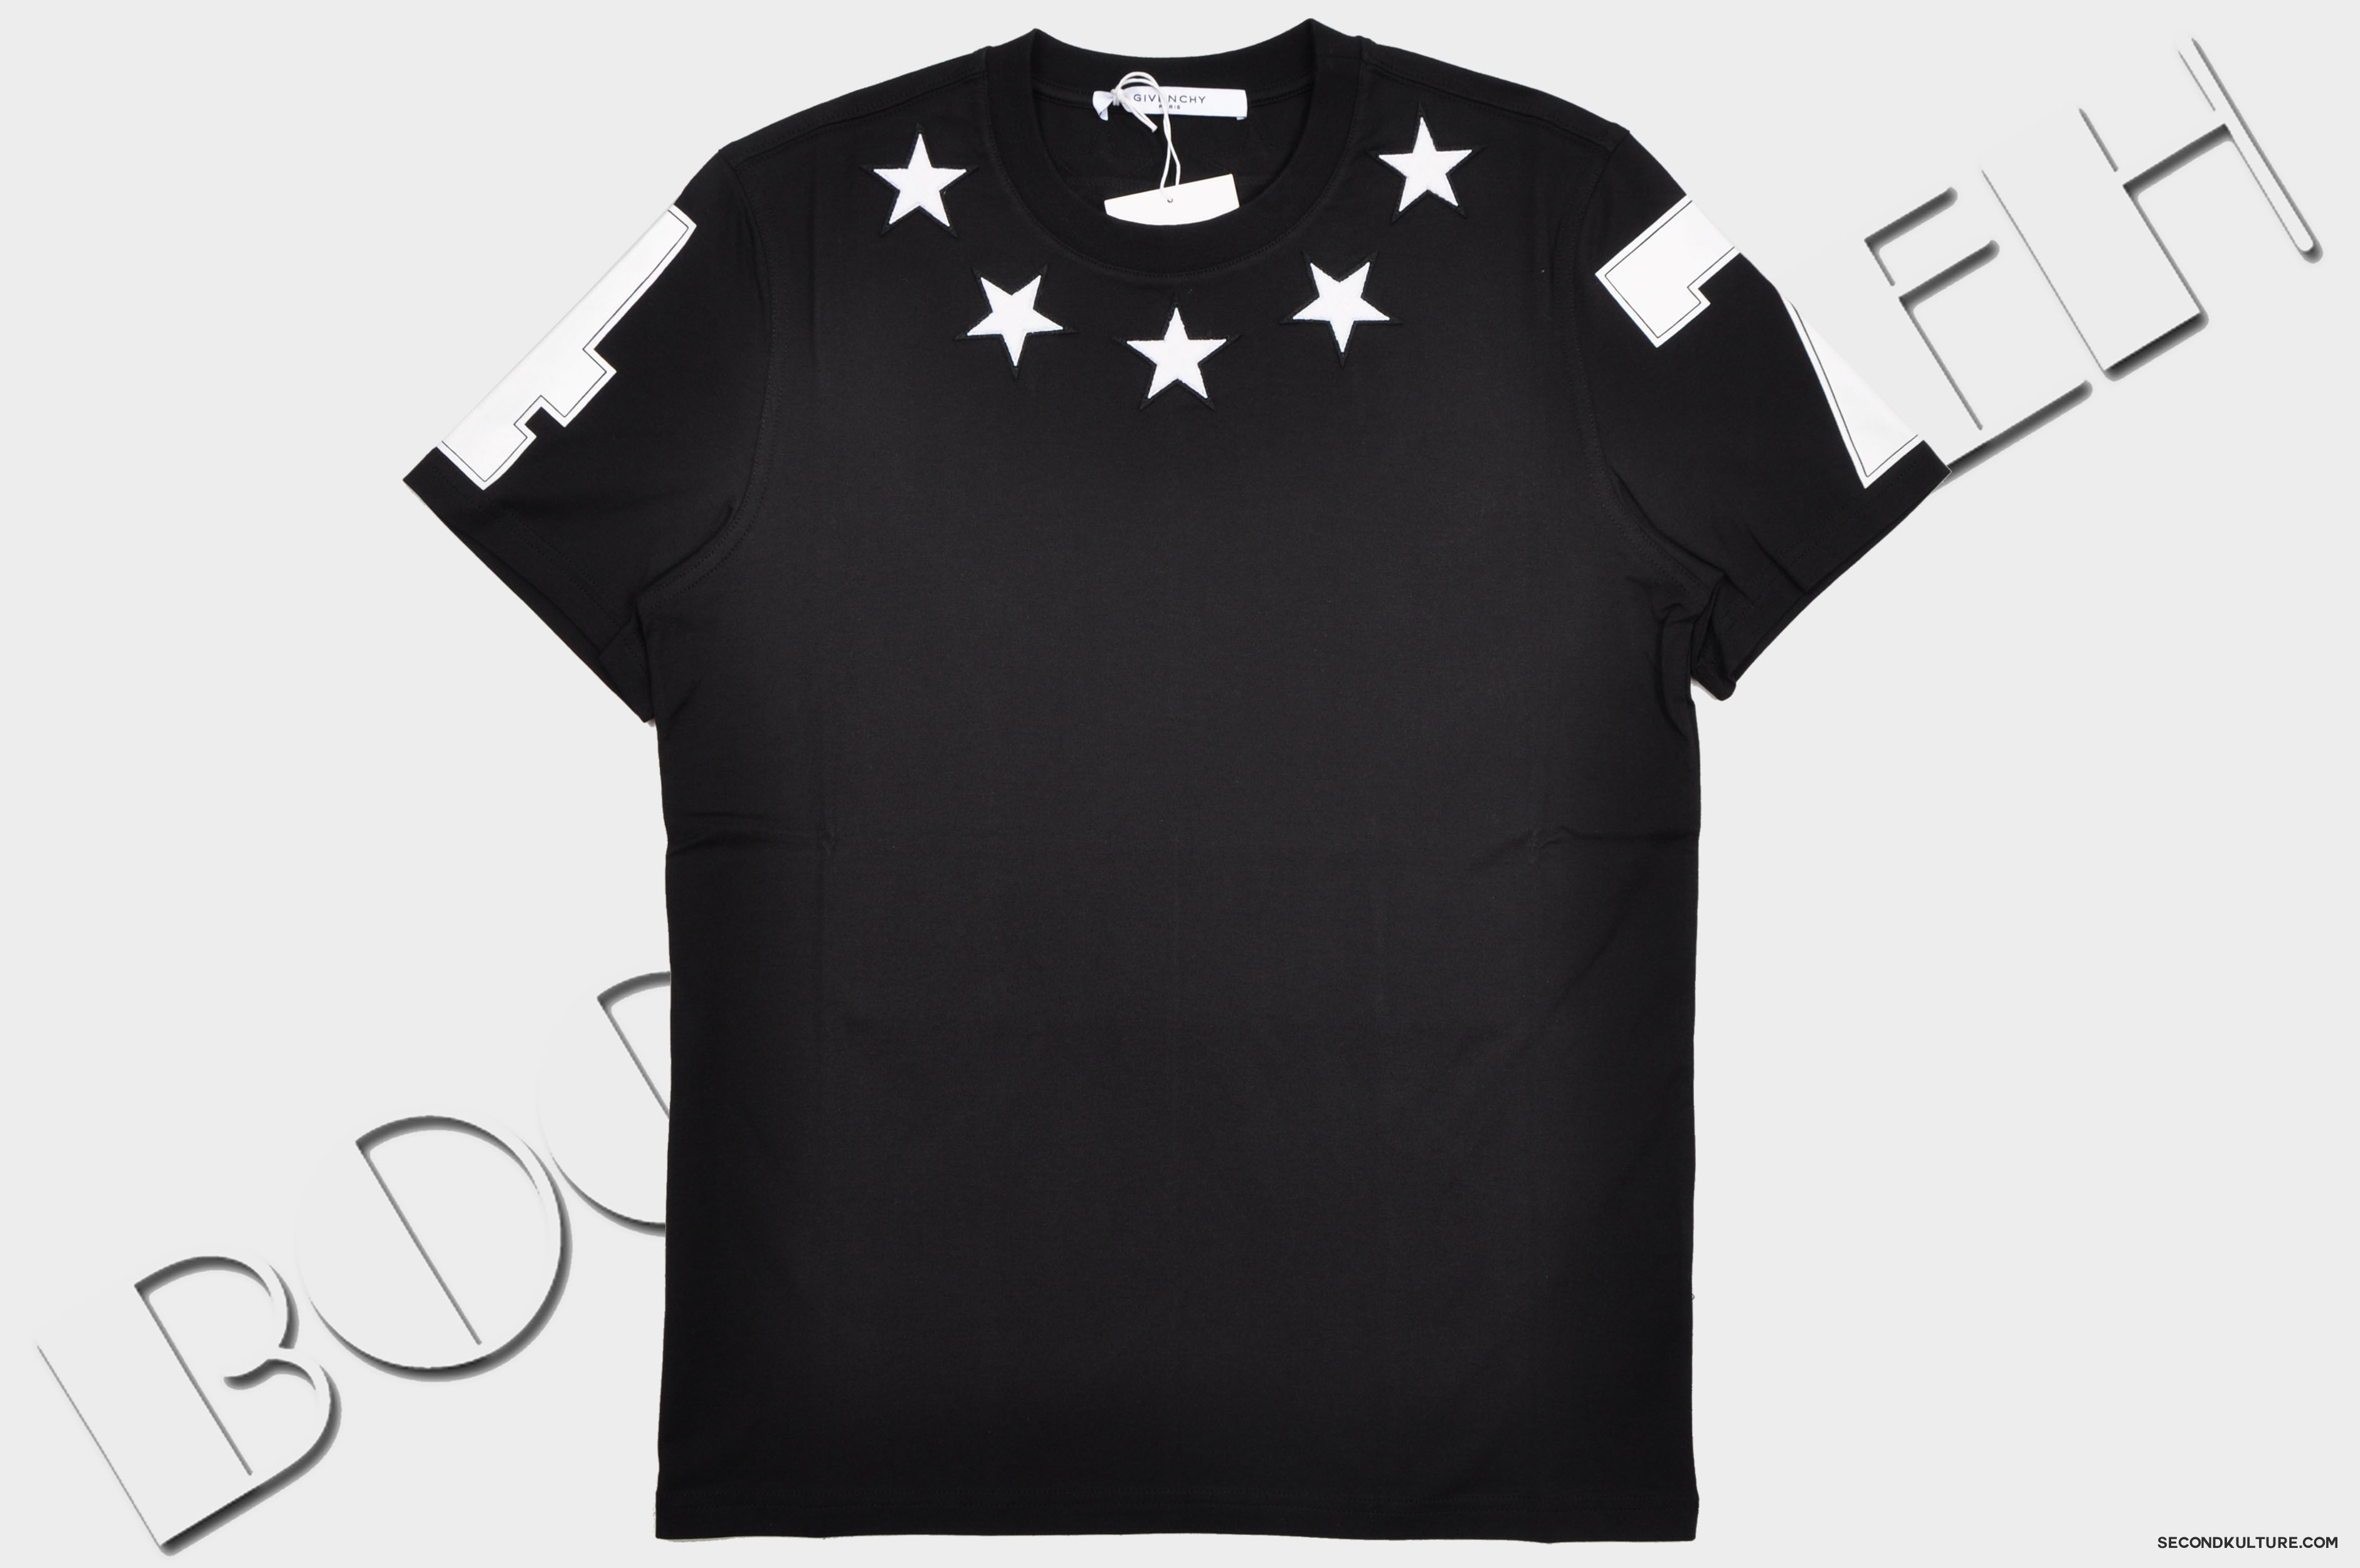 Givenchy-Black-Stars-Neckline-Embroidery-Cuban-Fit-T-Shirt-Pre-Fall-2015-15F7200651